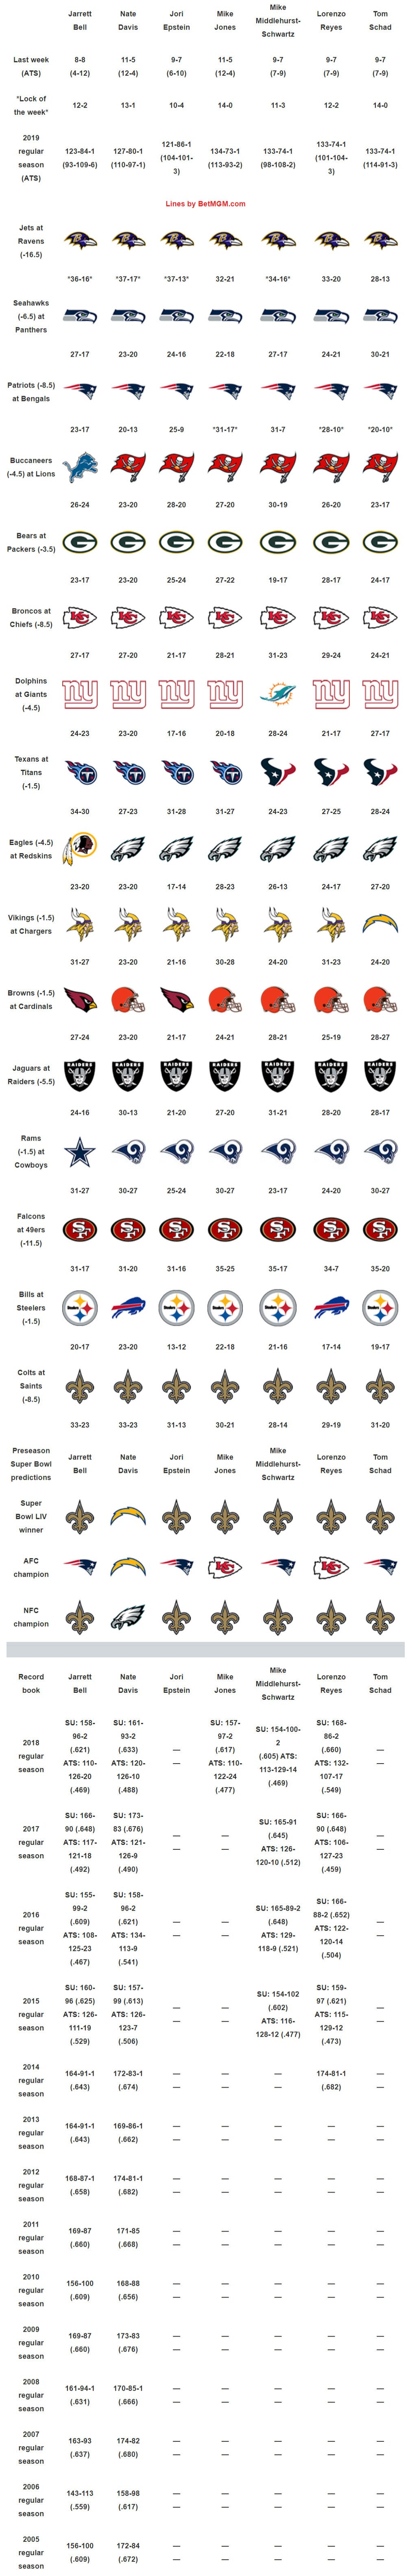 Nfl Picks Week 15 Do Texans Or Titans Claim First Place In Afc South